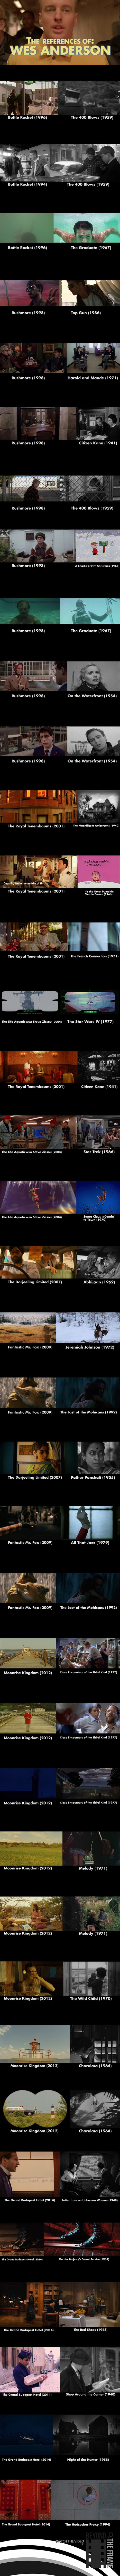 You'll find the #supercut of Wes Anderson's references if you click the image.